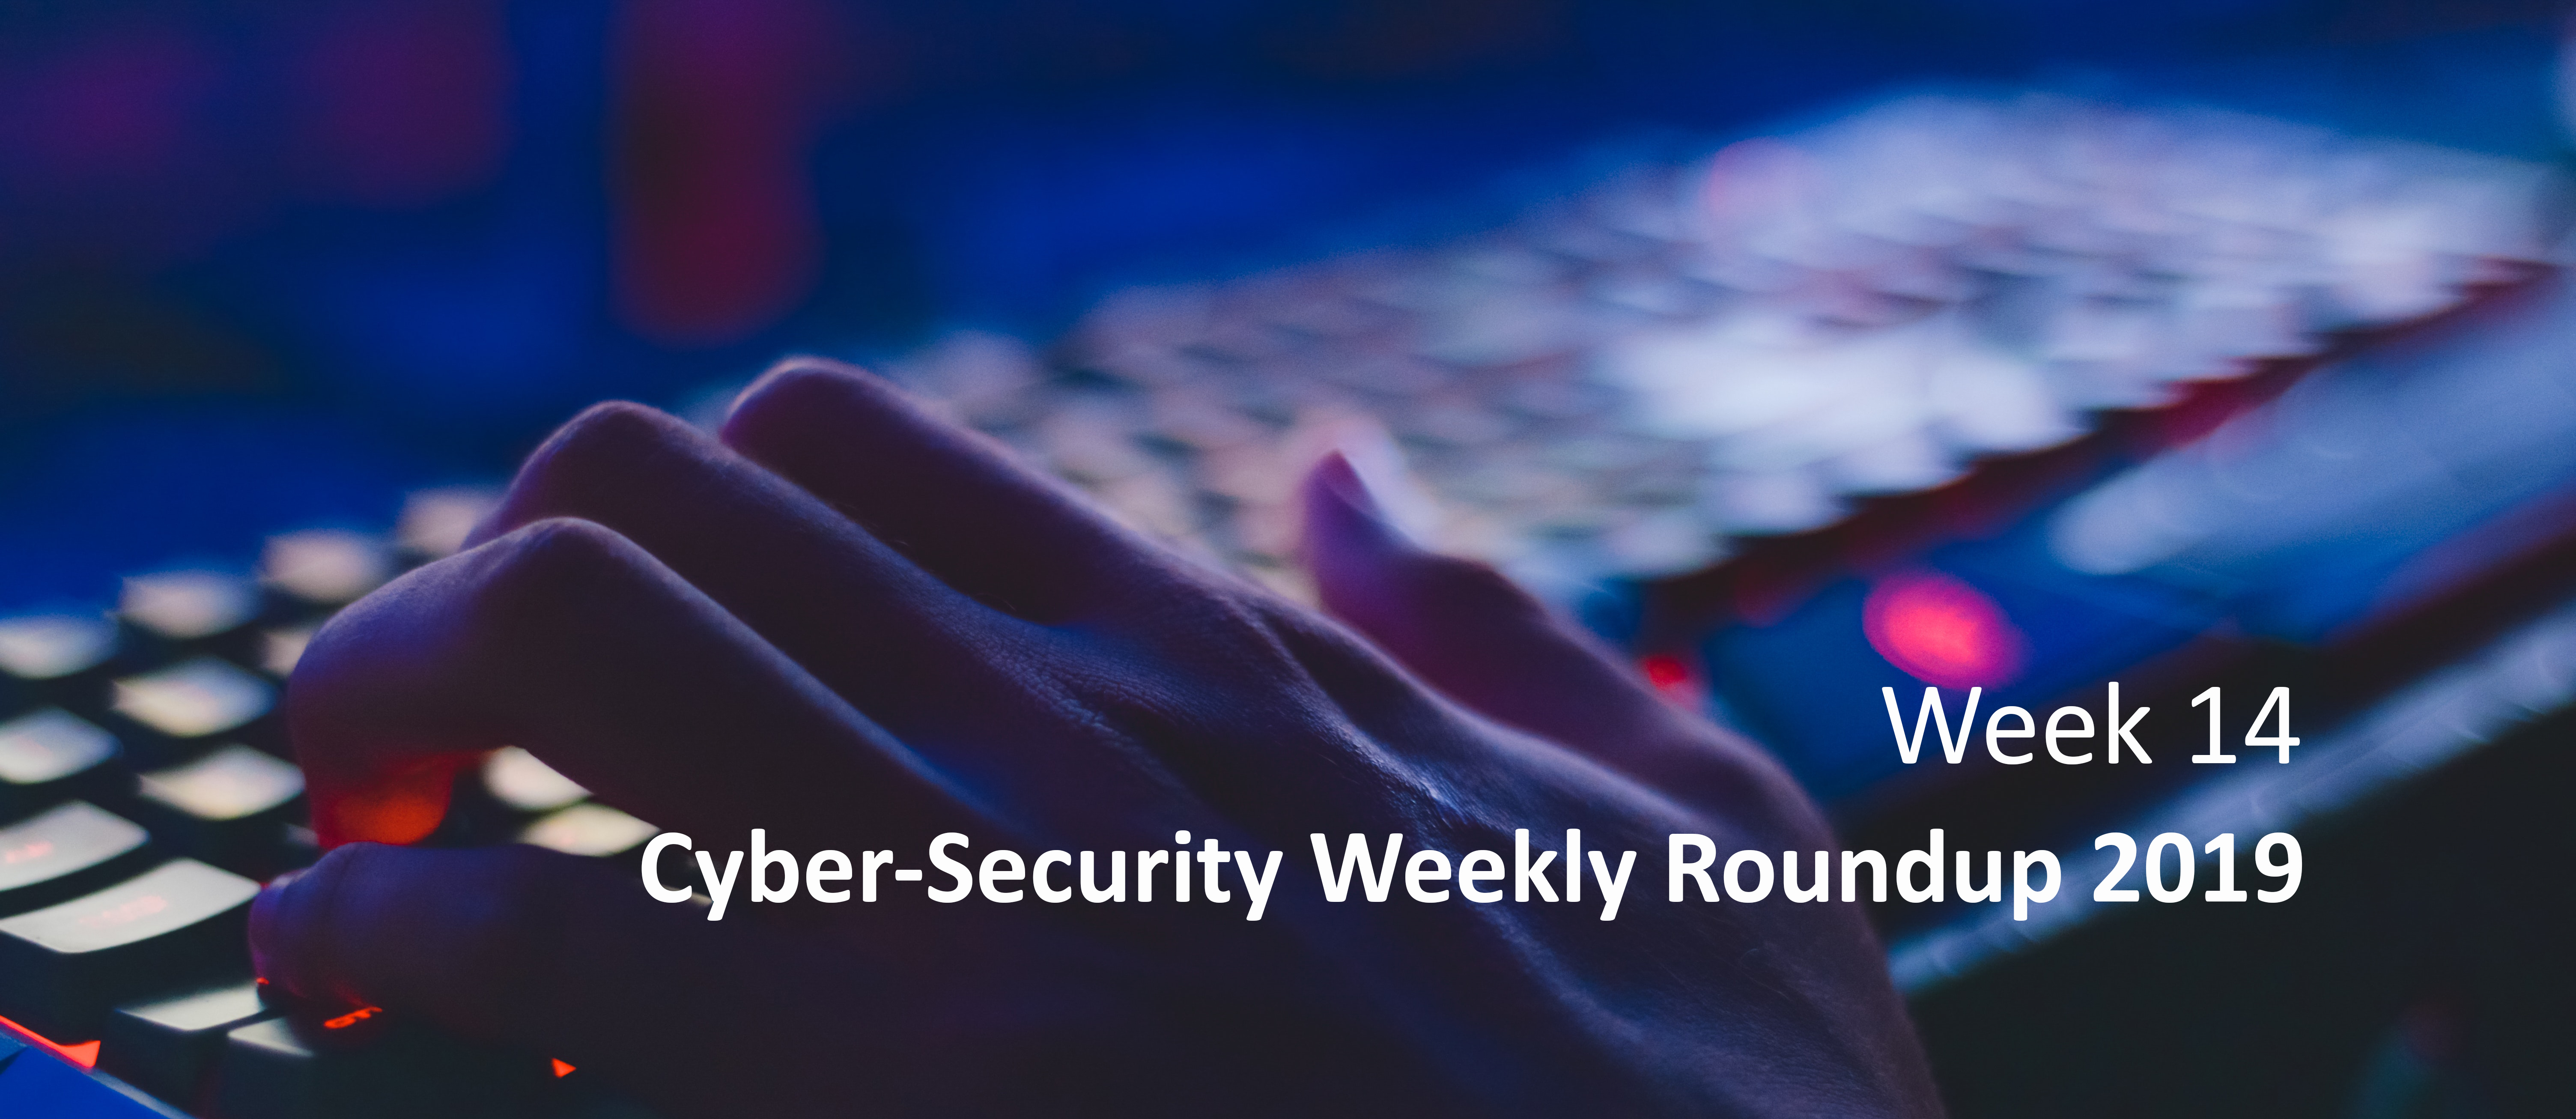 Cyber Attack Weekly Round Up wk 14